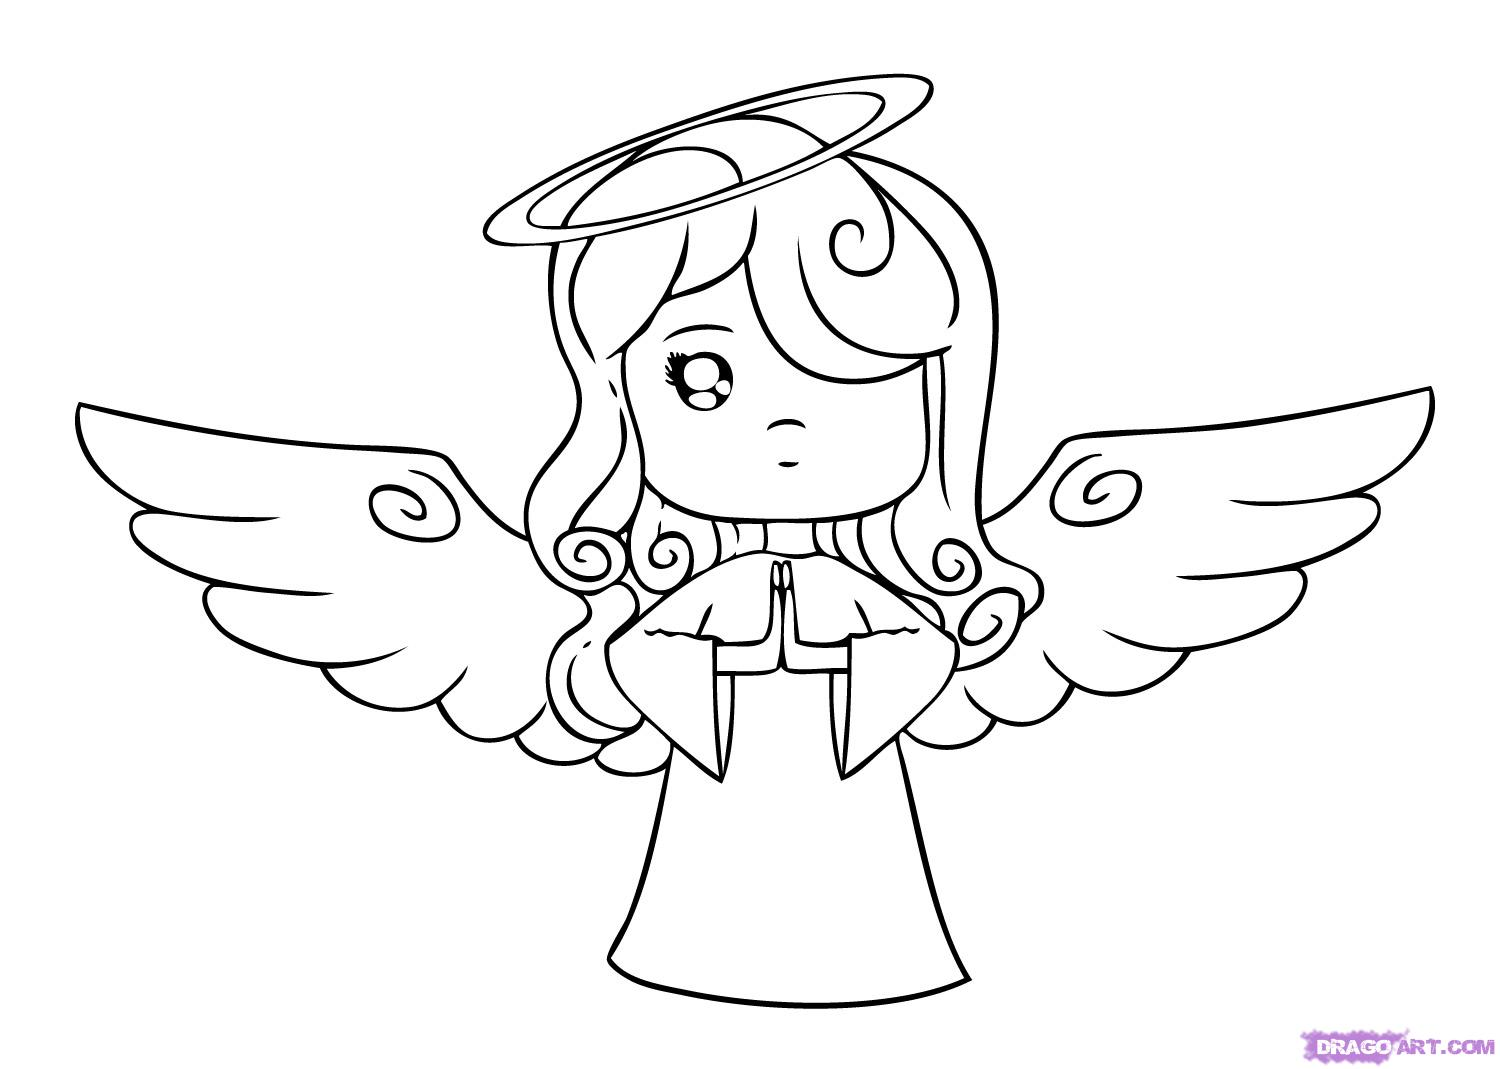 How to draw a cartoon angel step 6